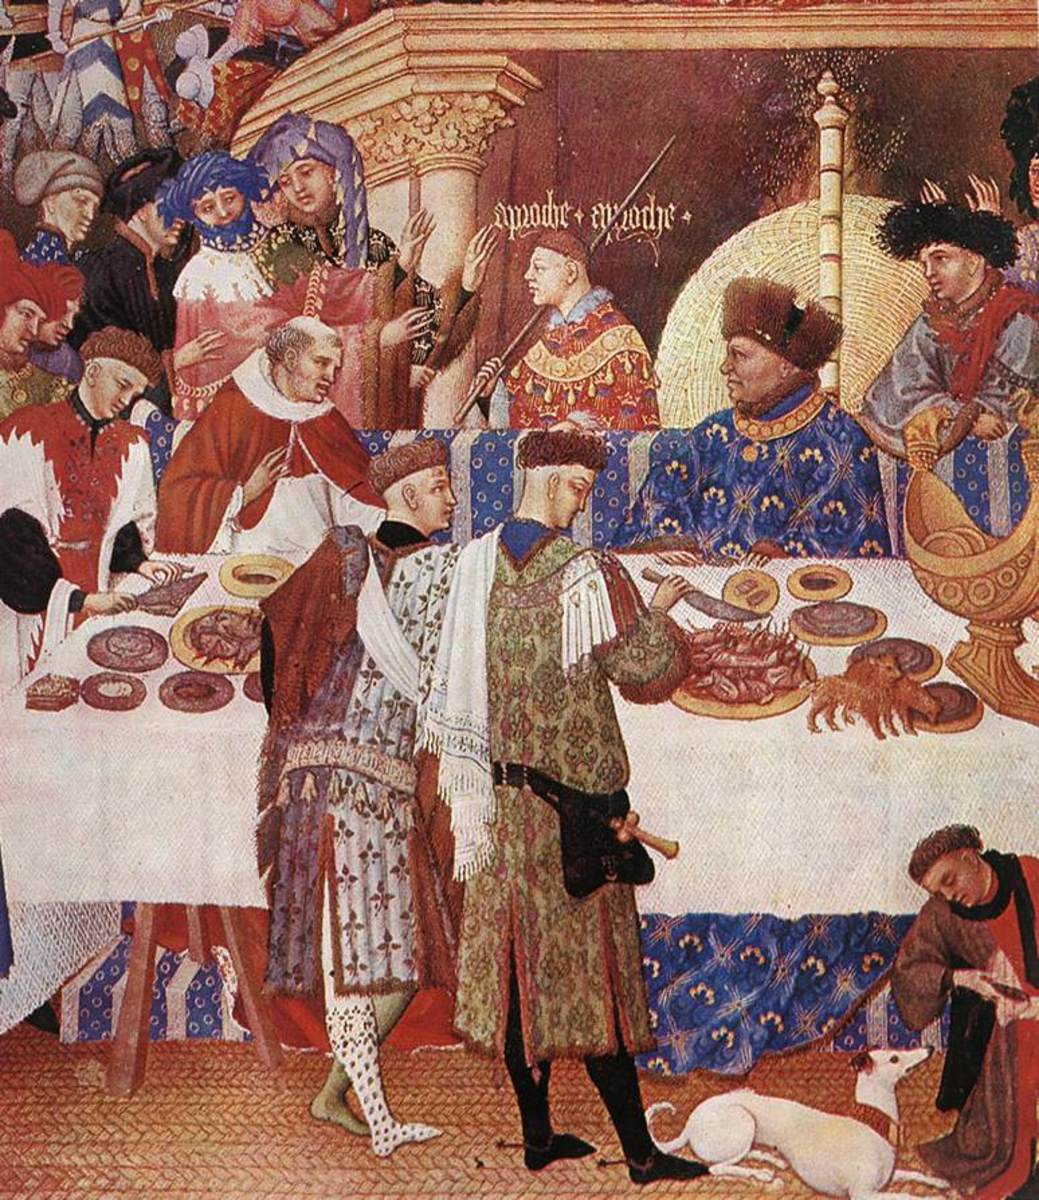 Medieval art depicts the hall as a place of feasting and celebration.